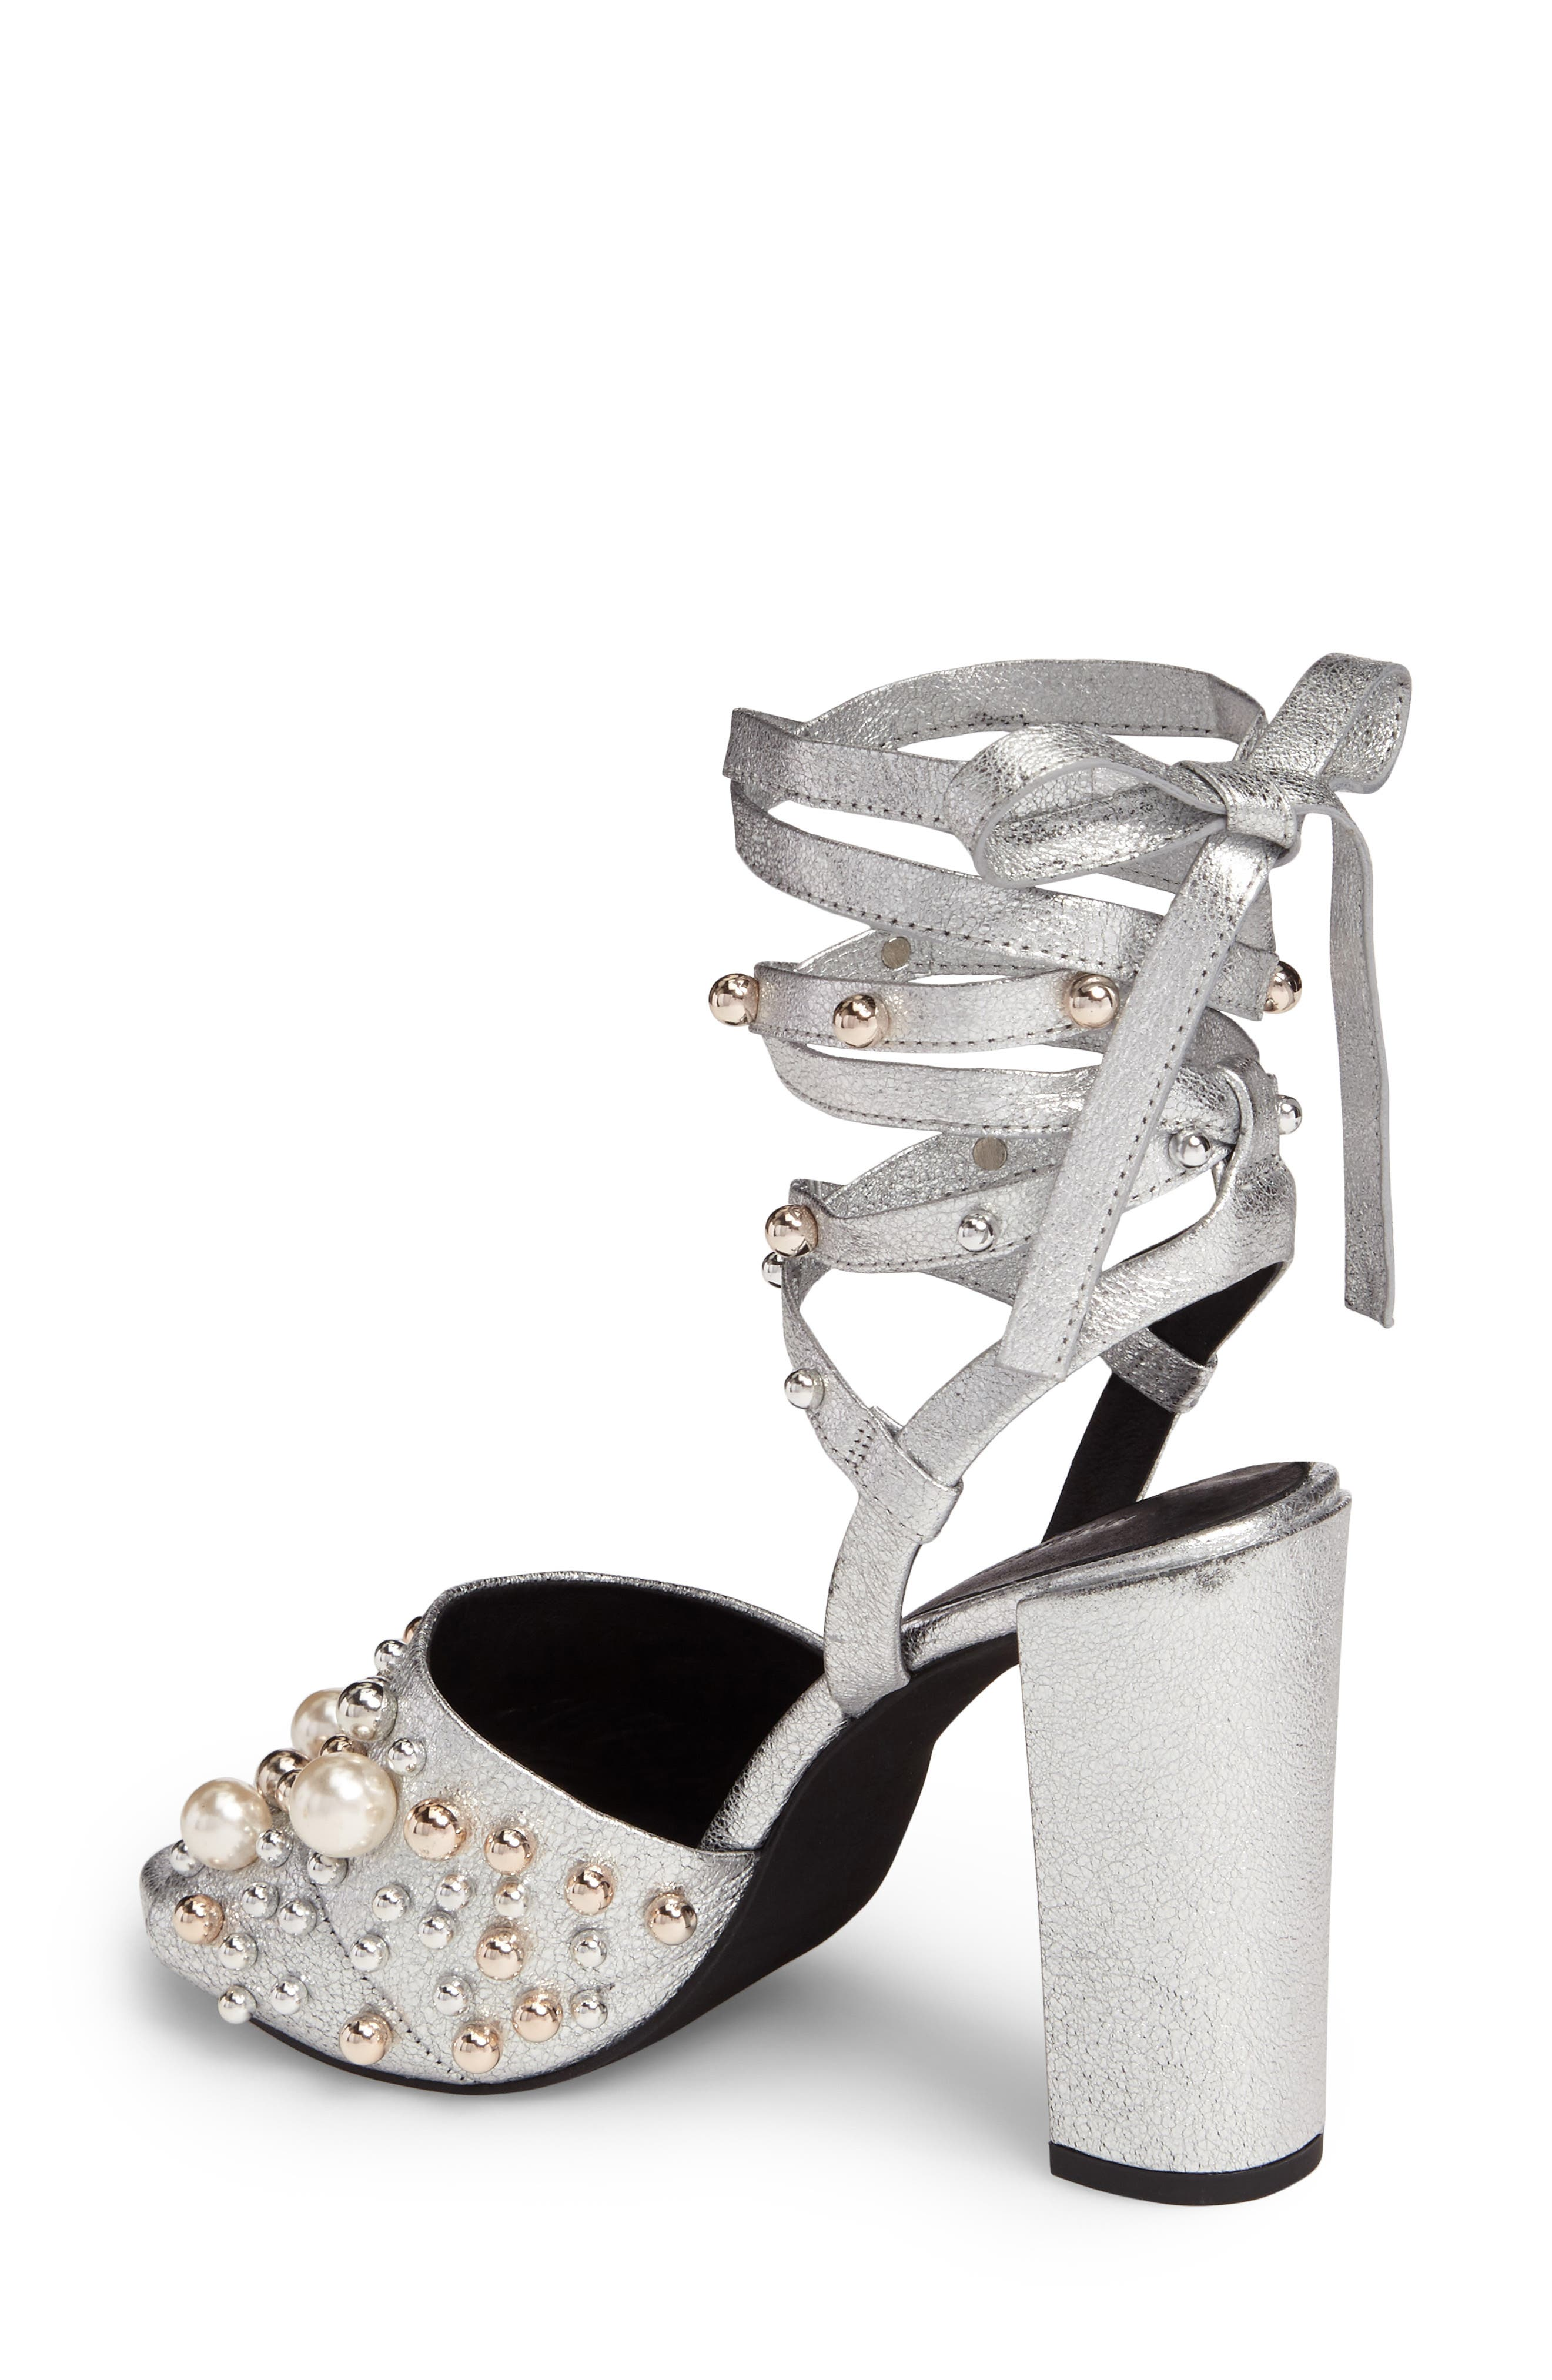 Dierdre Embellished Sandal,                             Alternate thumbnail 2, color,                             Nickel Leather